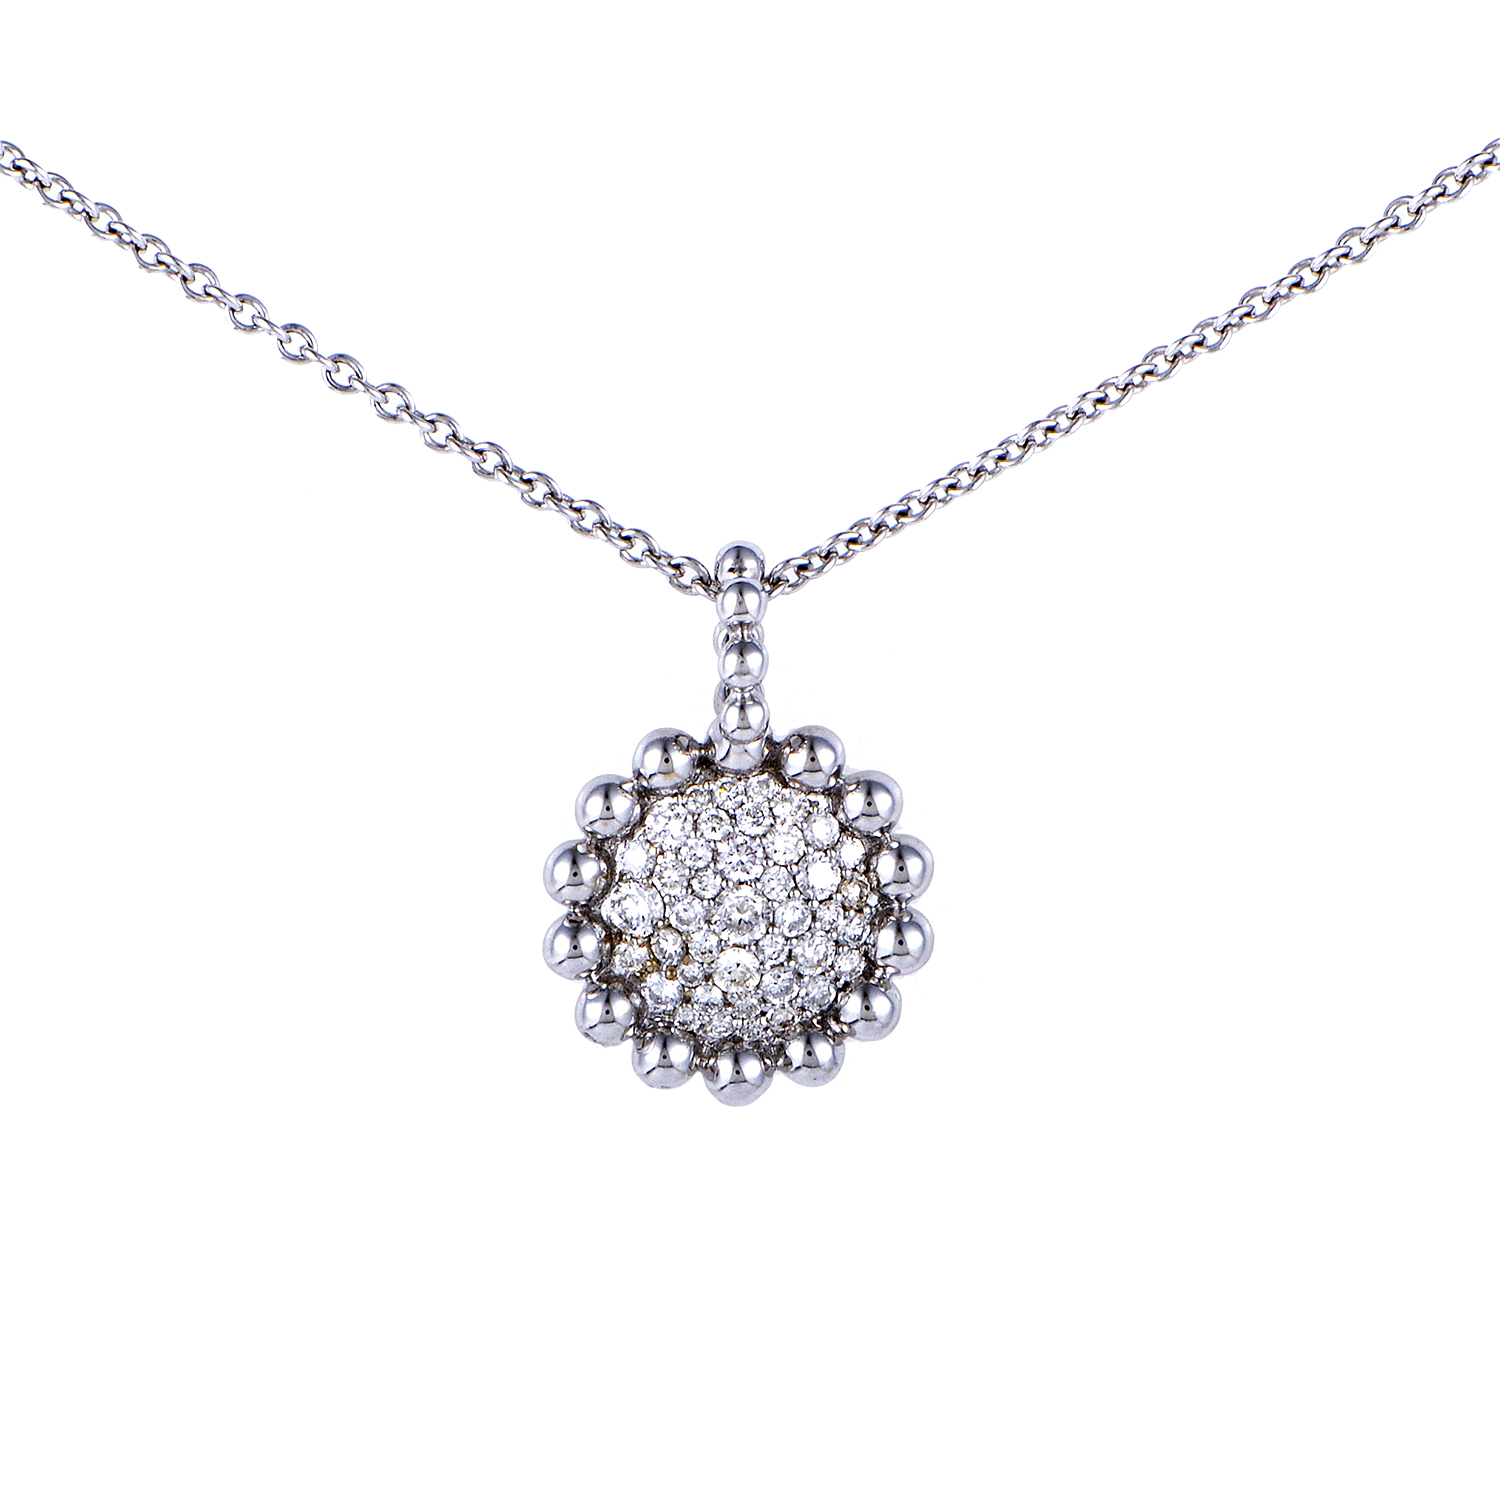 Women's 18K White Gold Diamond Pave Pendant Necklace KEMS45PNBZ